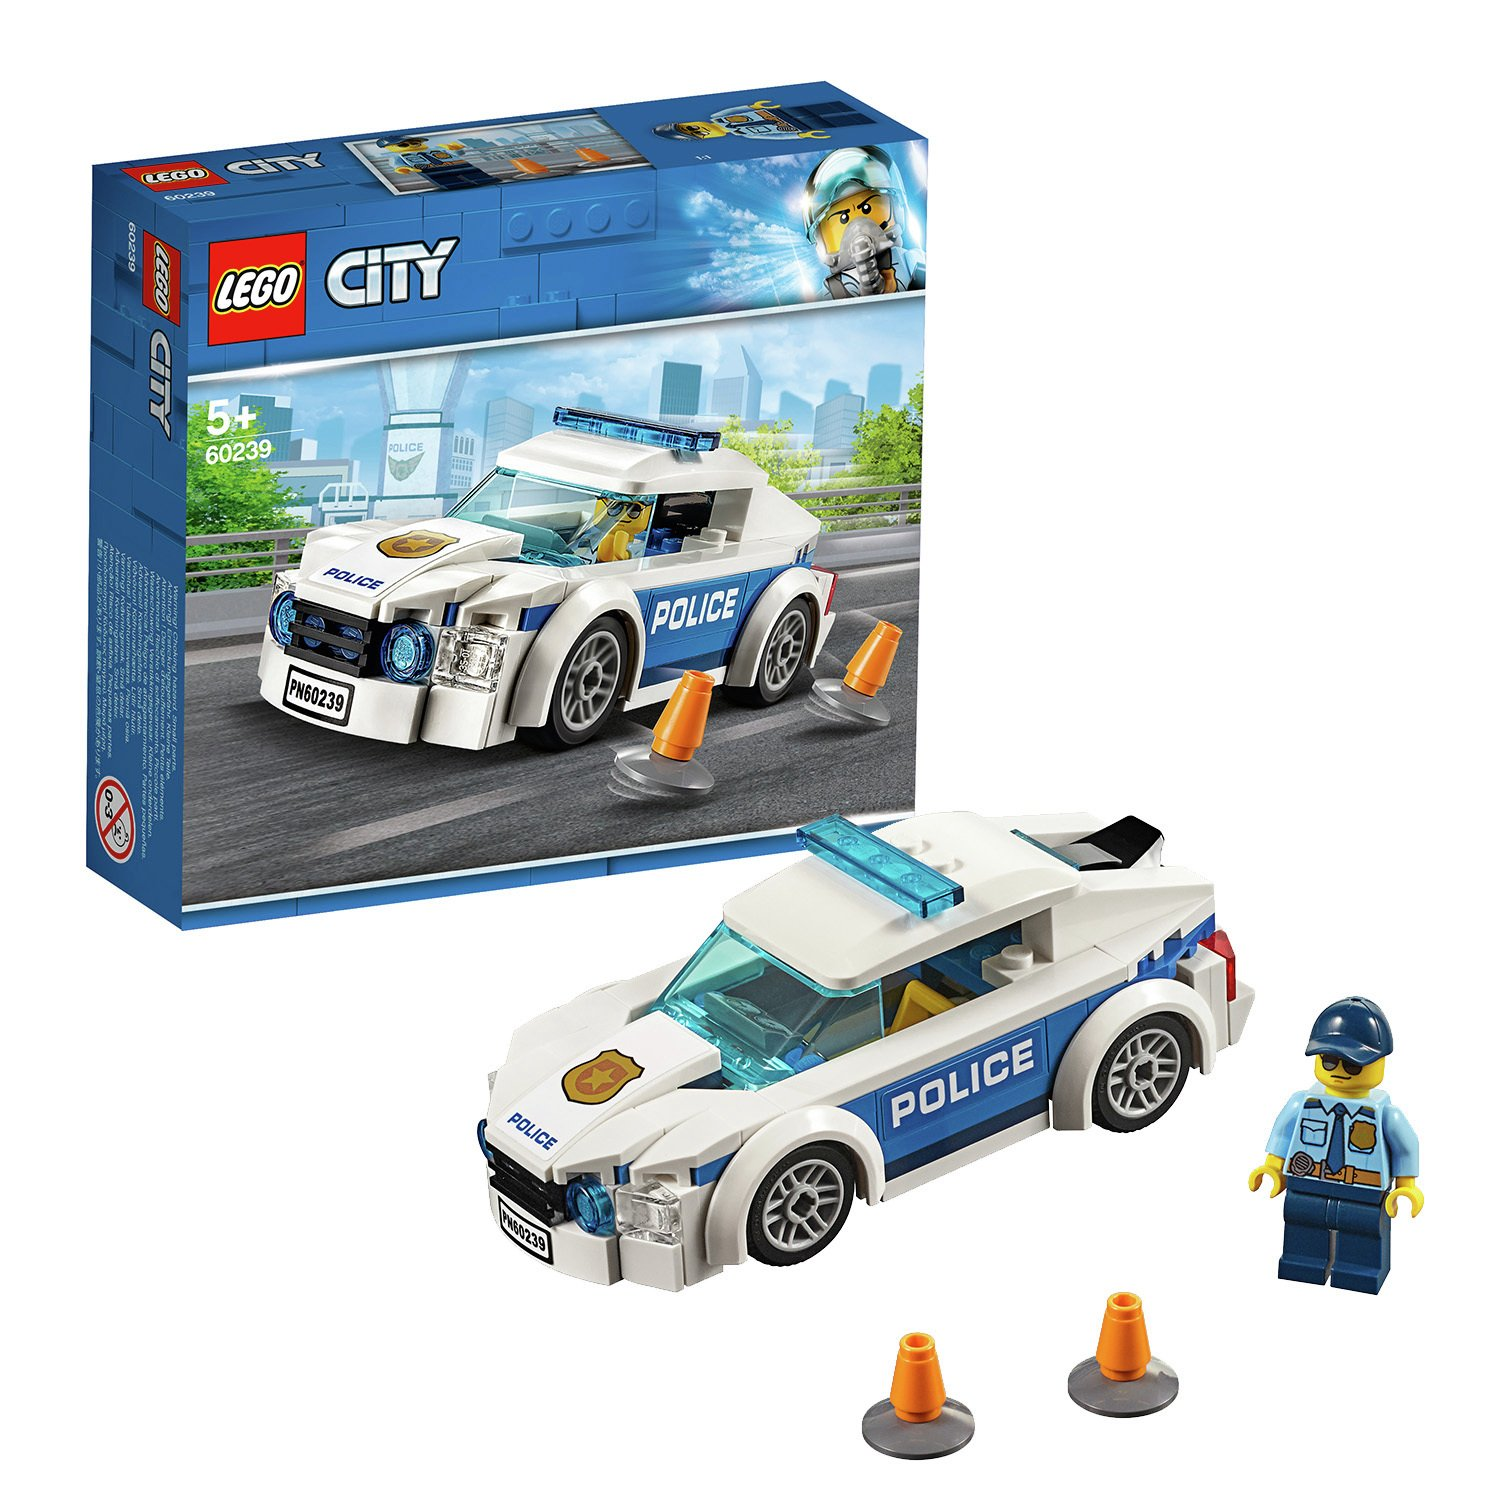 LEGO City Police Patrol Toy Car - 60239